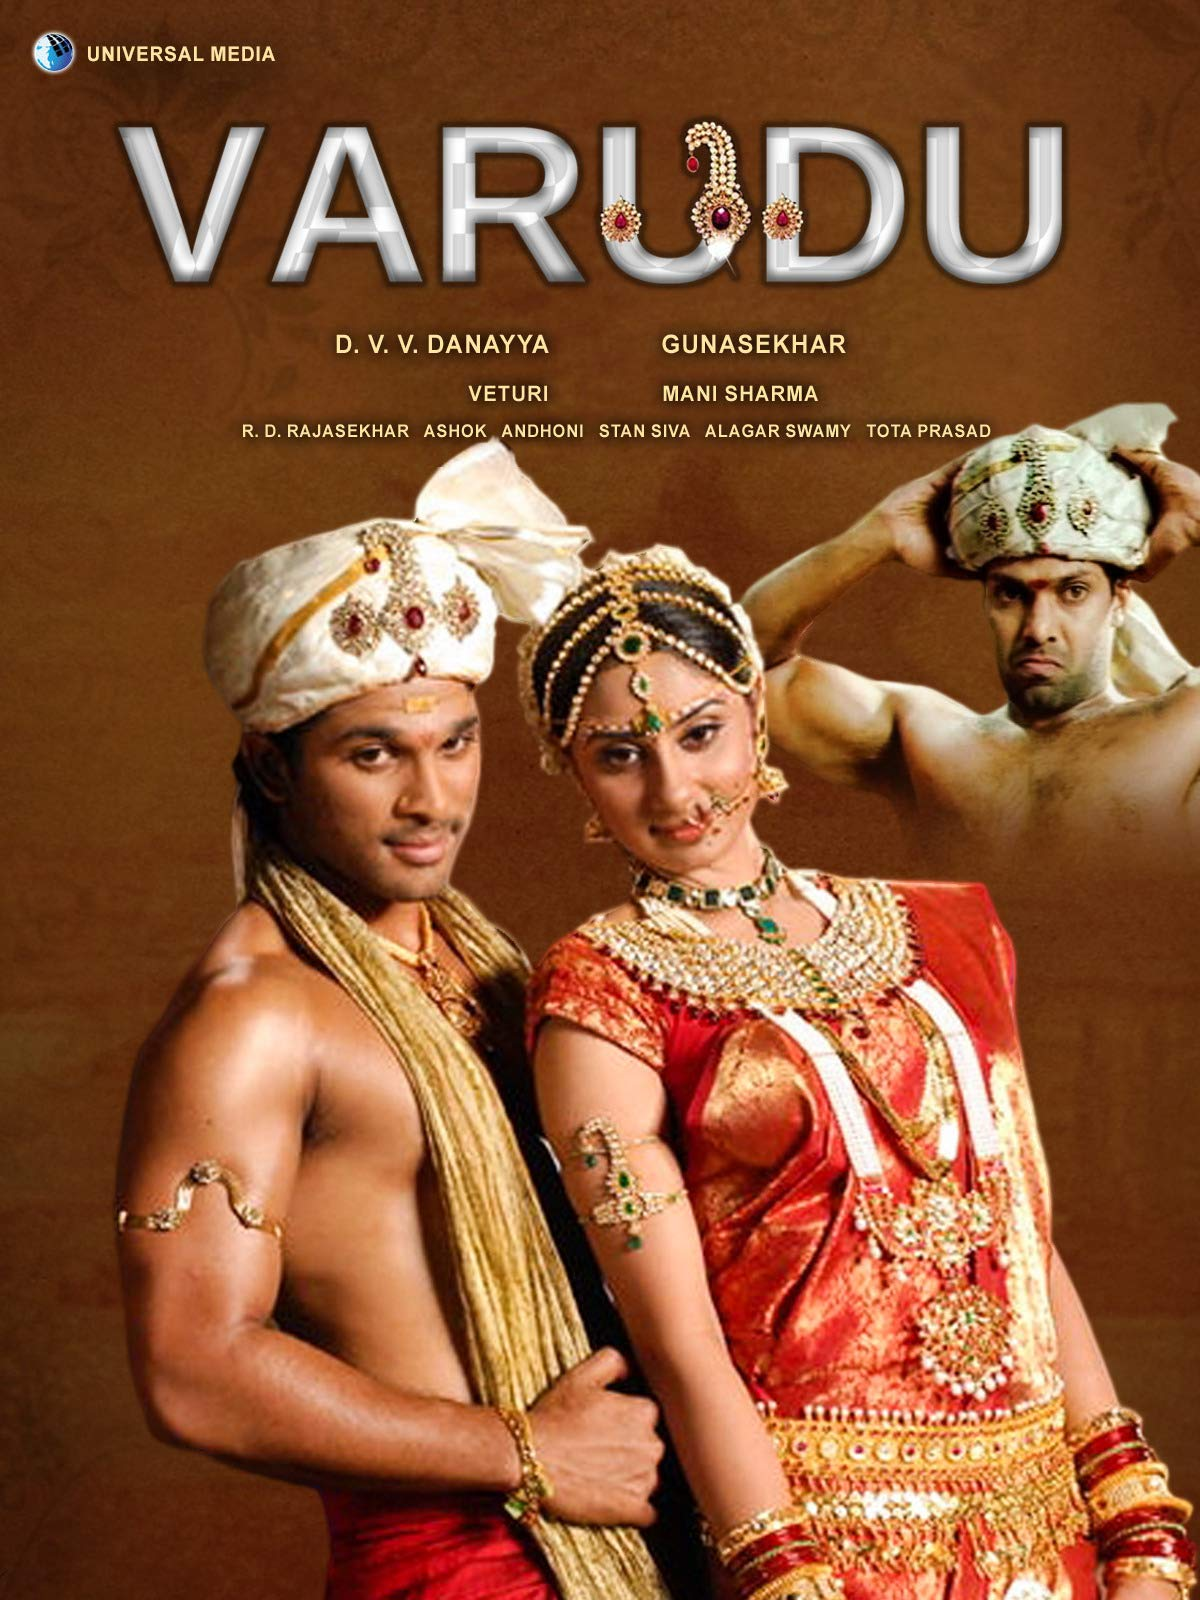 Varudu (Ek Aur Rakshak) 2021 Hindi Dubbed 720p HDRip 1.1GB